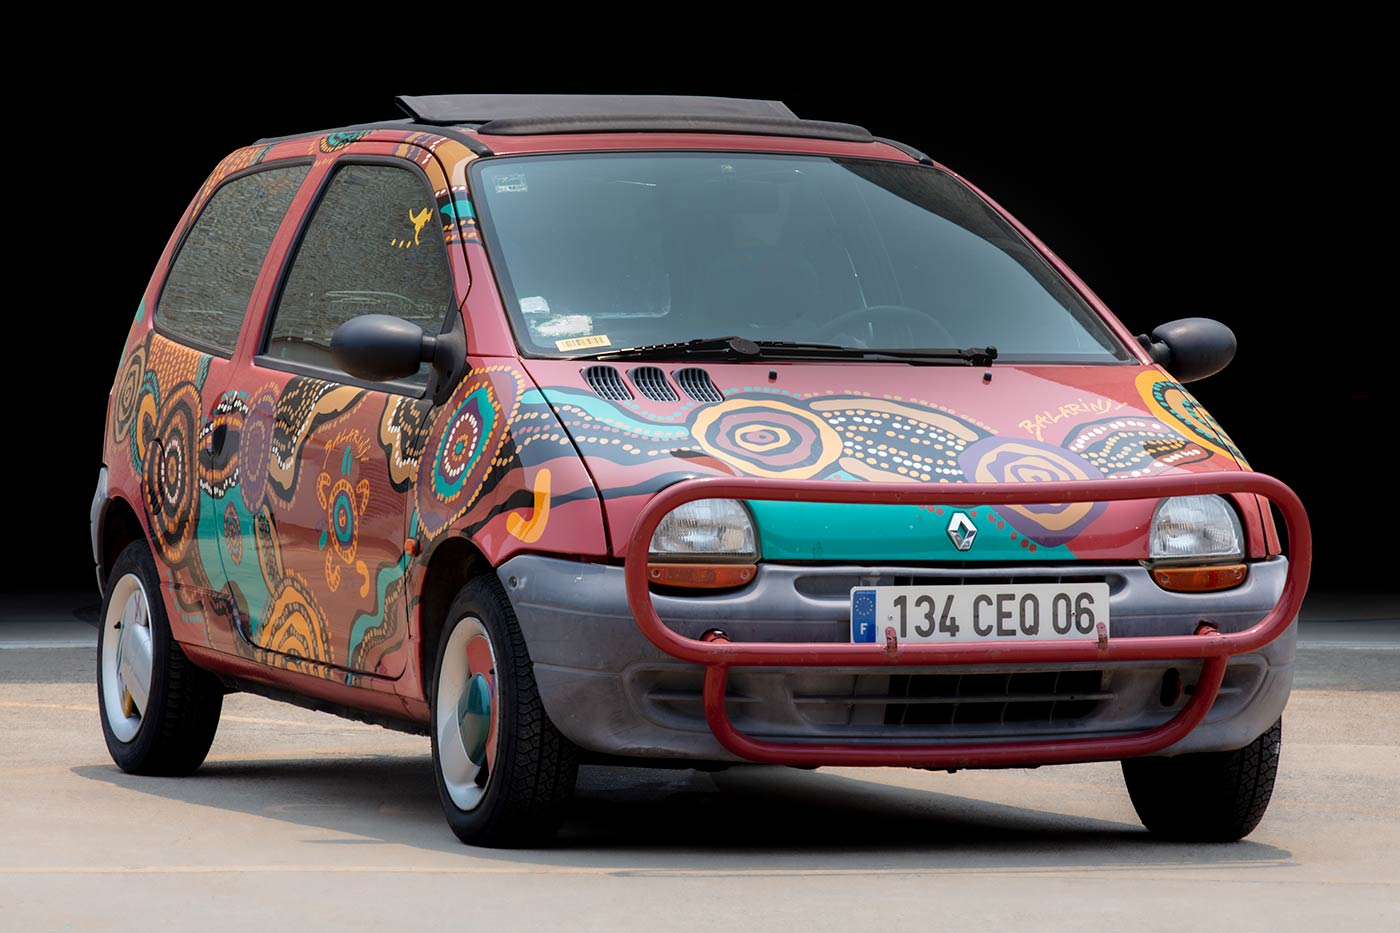 A 1993 Renault Twingo car painted with a Balarinji 'Wunala Dreaming' design. The small car has two doors and a hatch-back, is petrol-driven and left hand drive, and has a bull-bar at the front. The painted design features dotted, circular and line motifs against a red background, and the 'BALARiNji' logo on the front passenger door. - click to view larger image